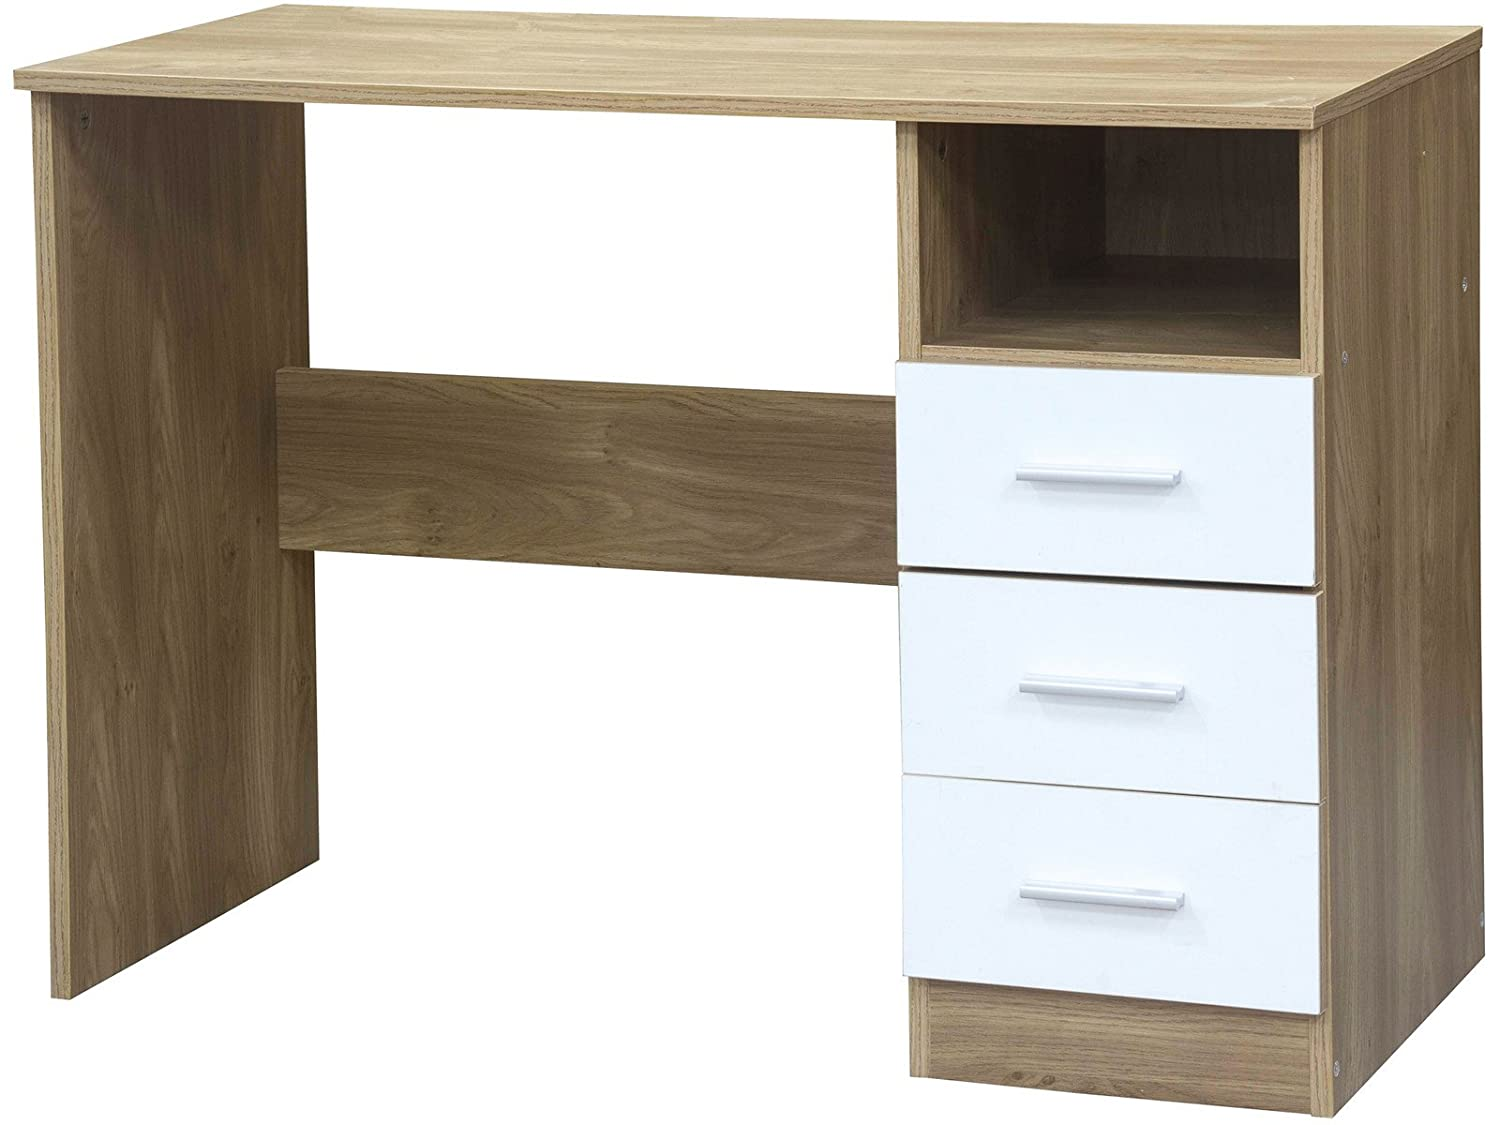 Home Source High Gloss Dressing Table | Study Desk with 3 Drawers - Ottawa Caspian SUPREME Range (Oak and White) Right Deals Uk